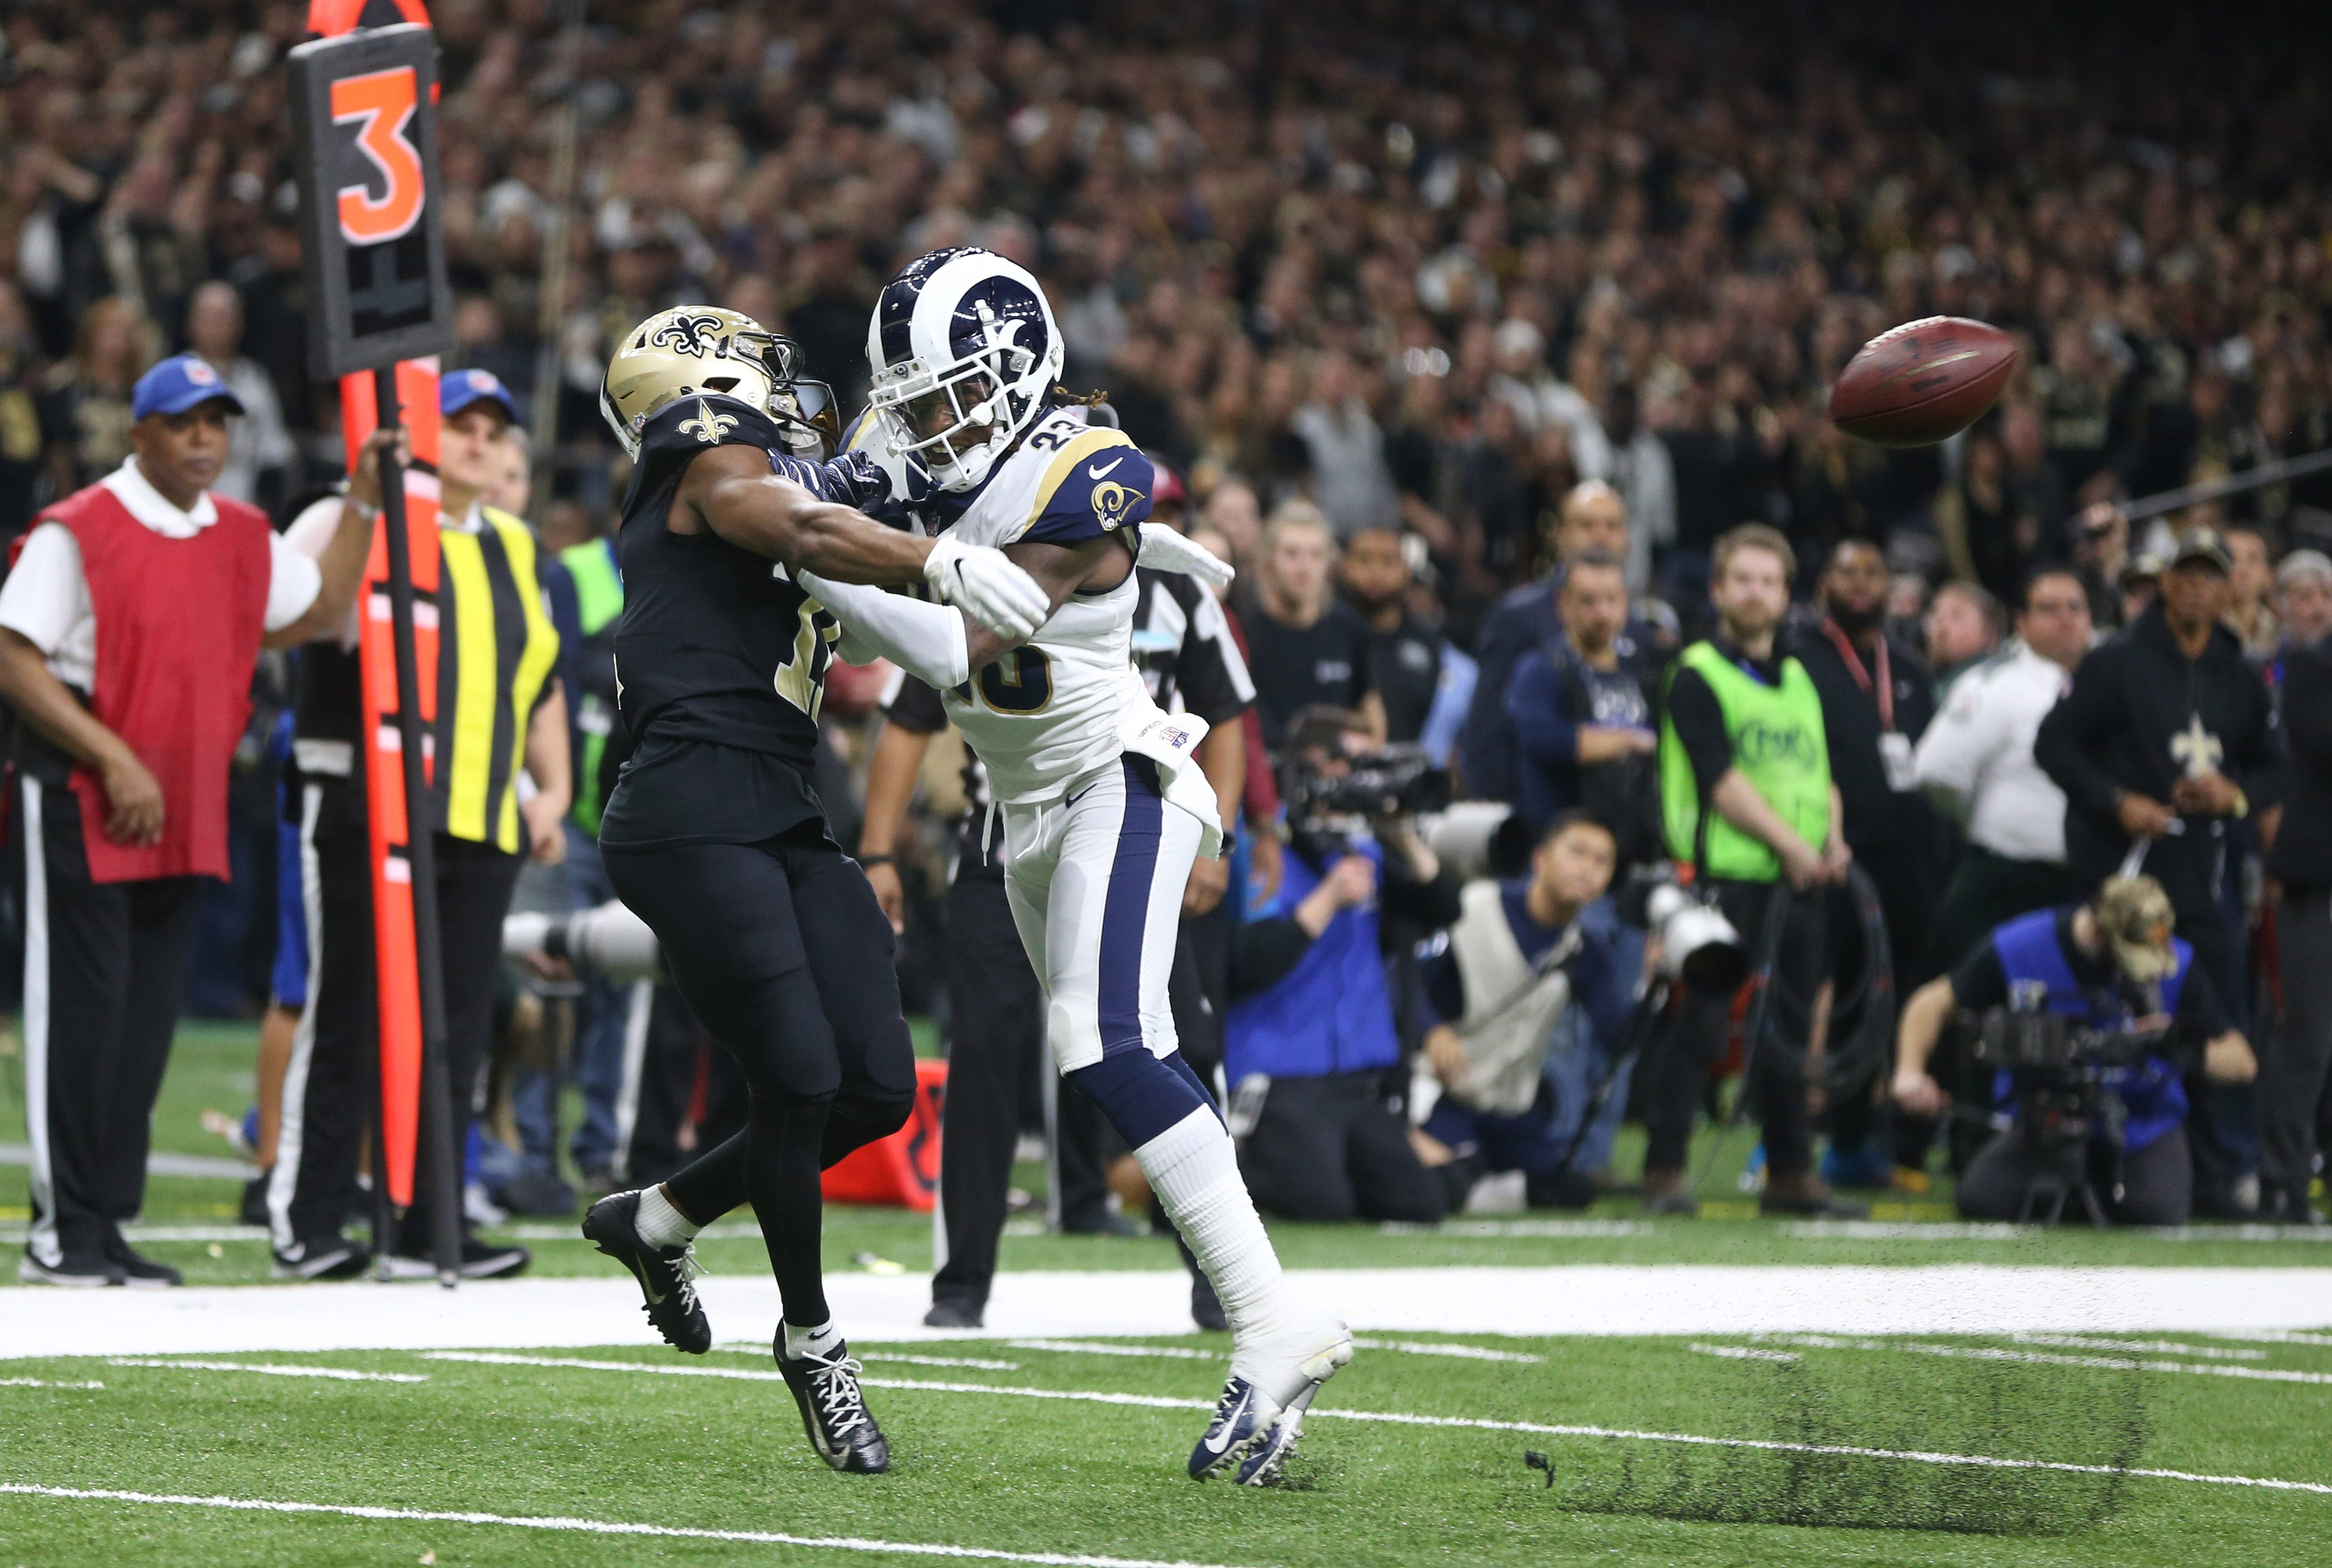 Sean Payton: NFL admits official missed pass interference call on Rams in NFC Championship